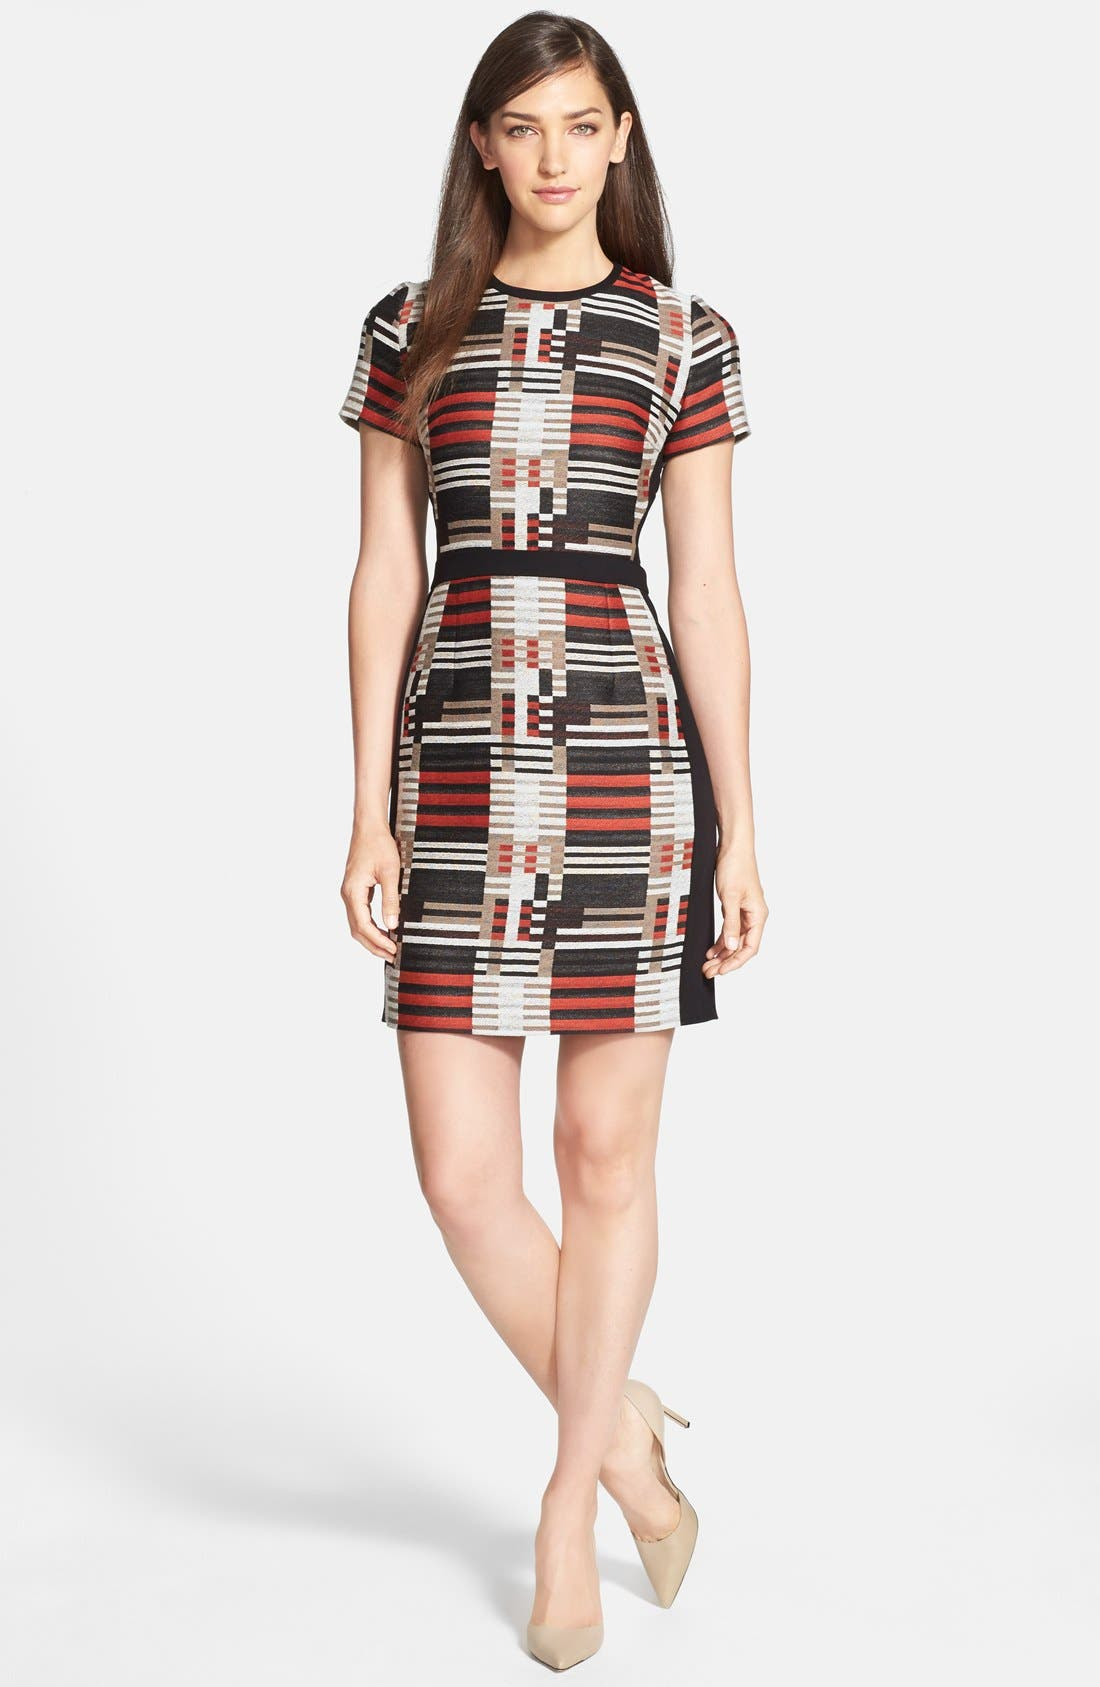 Main Image - BOSS 'Hesandra1' Tweed Pattern Sheath Dress